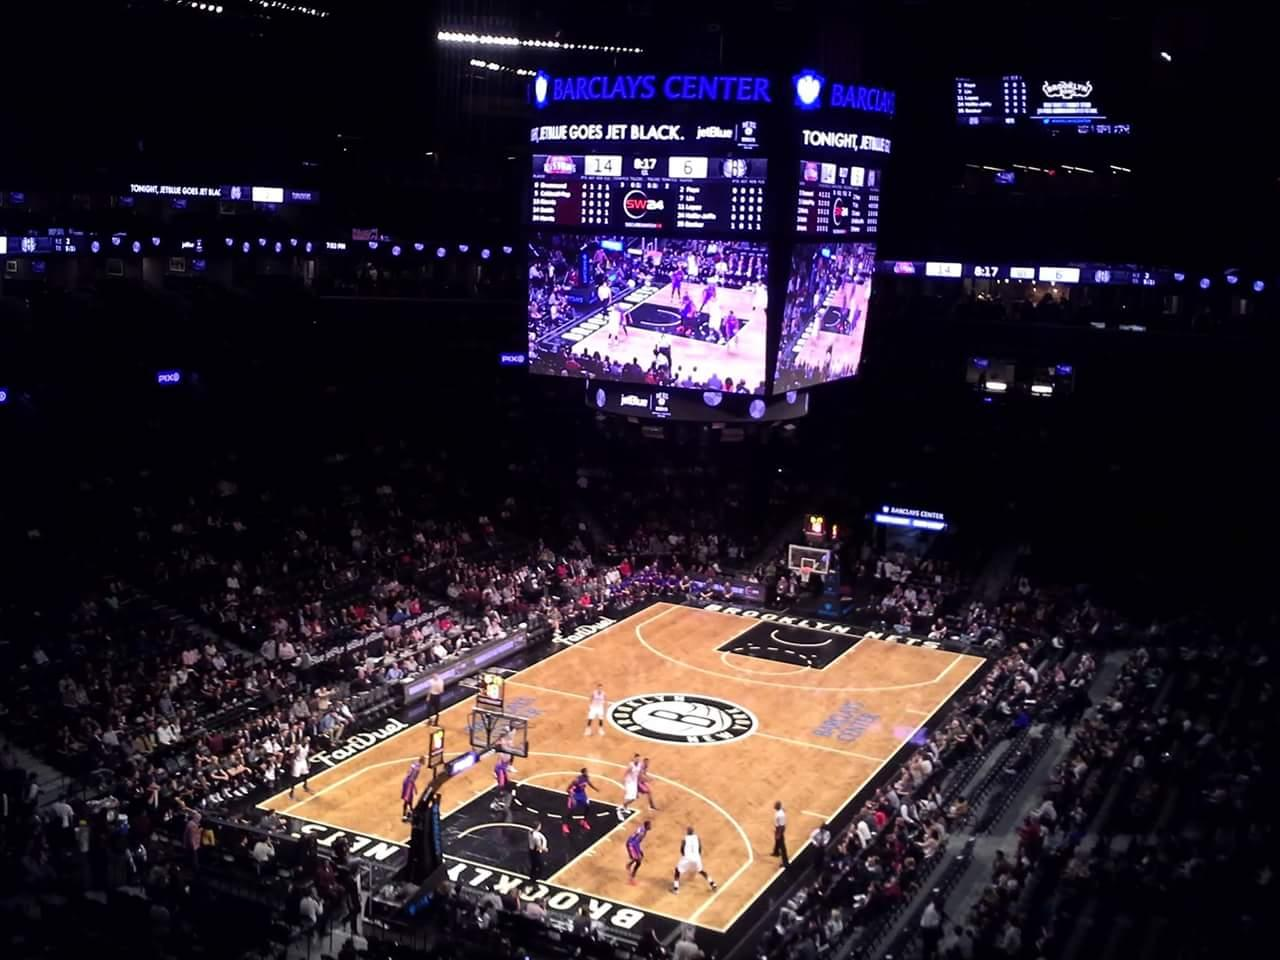 Barclays Center Section 230 Row 4 Seat 1